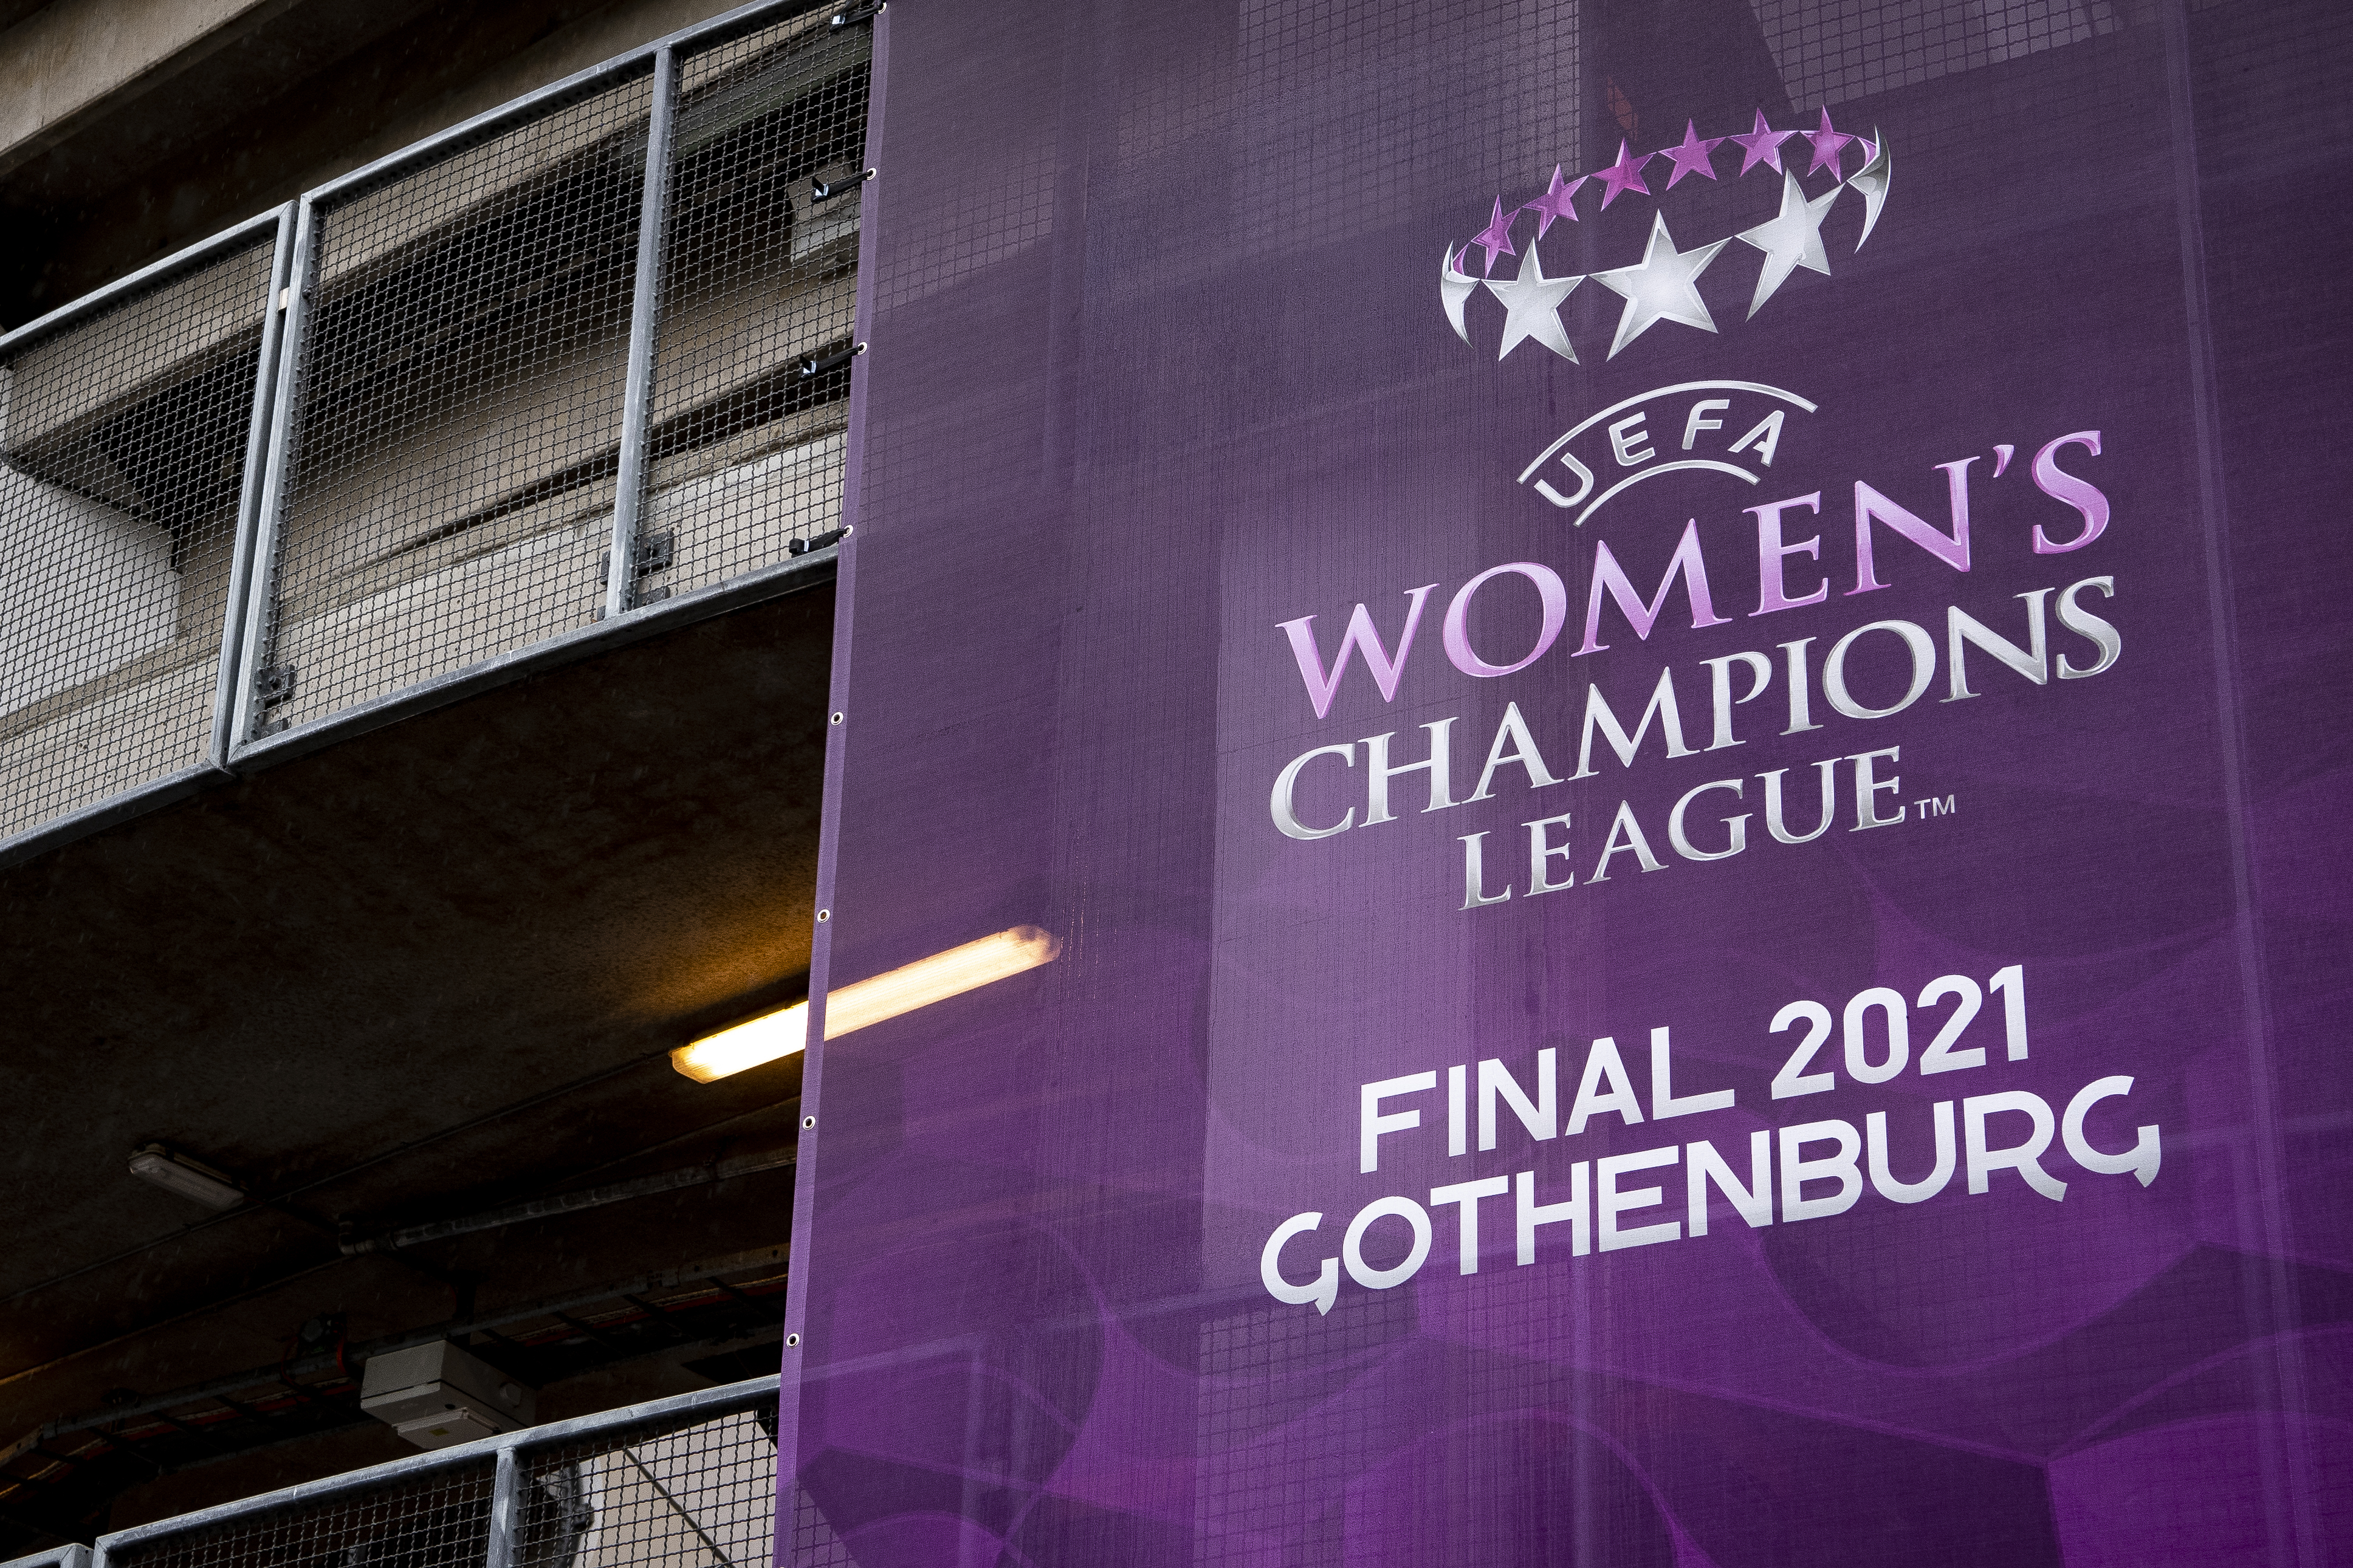 Chelsea FC Training Session and Press Conference - UEFA Women's Champions League Final 2021